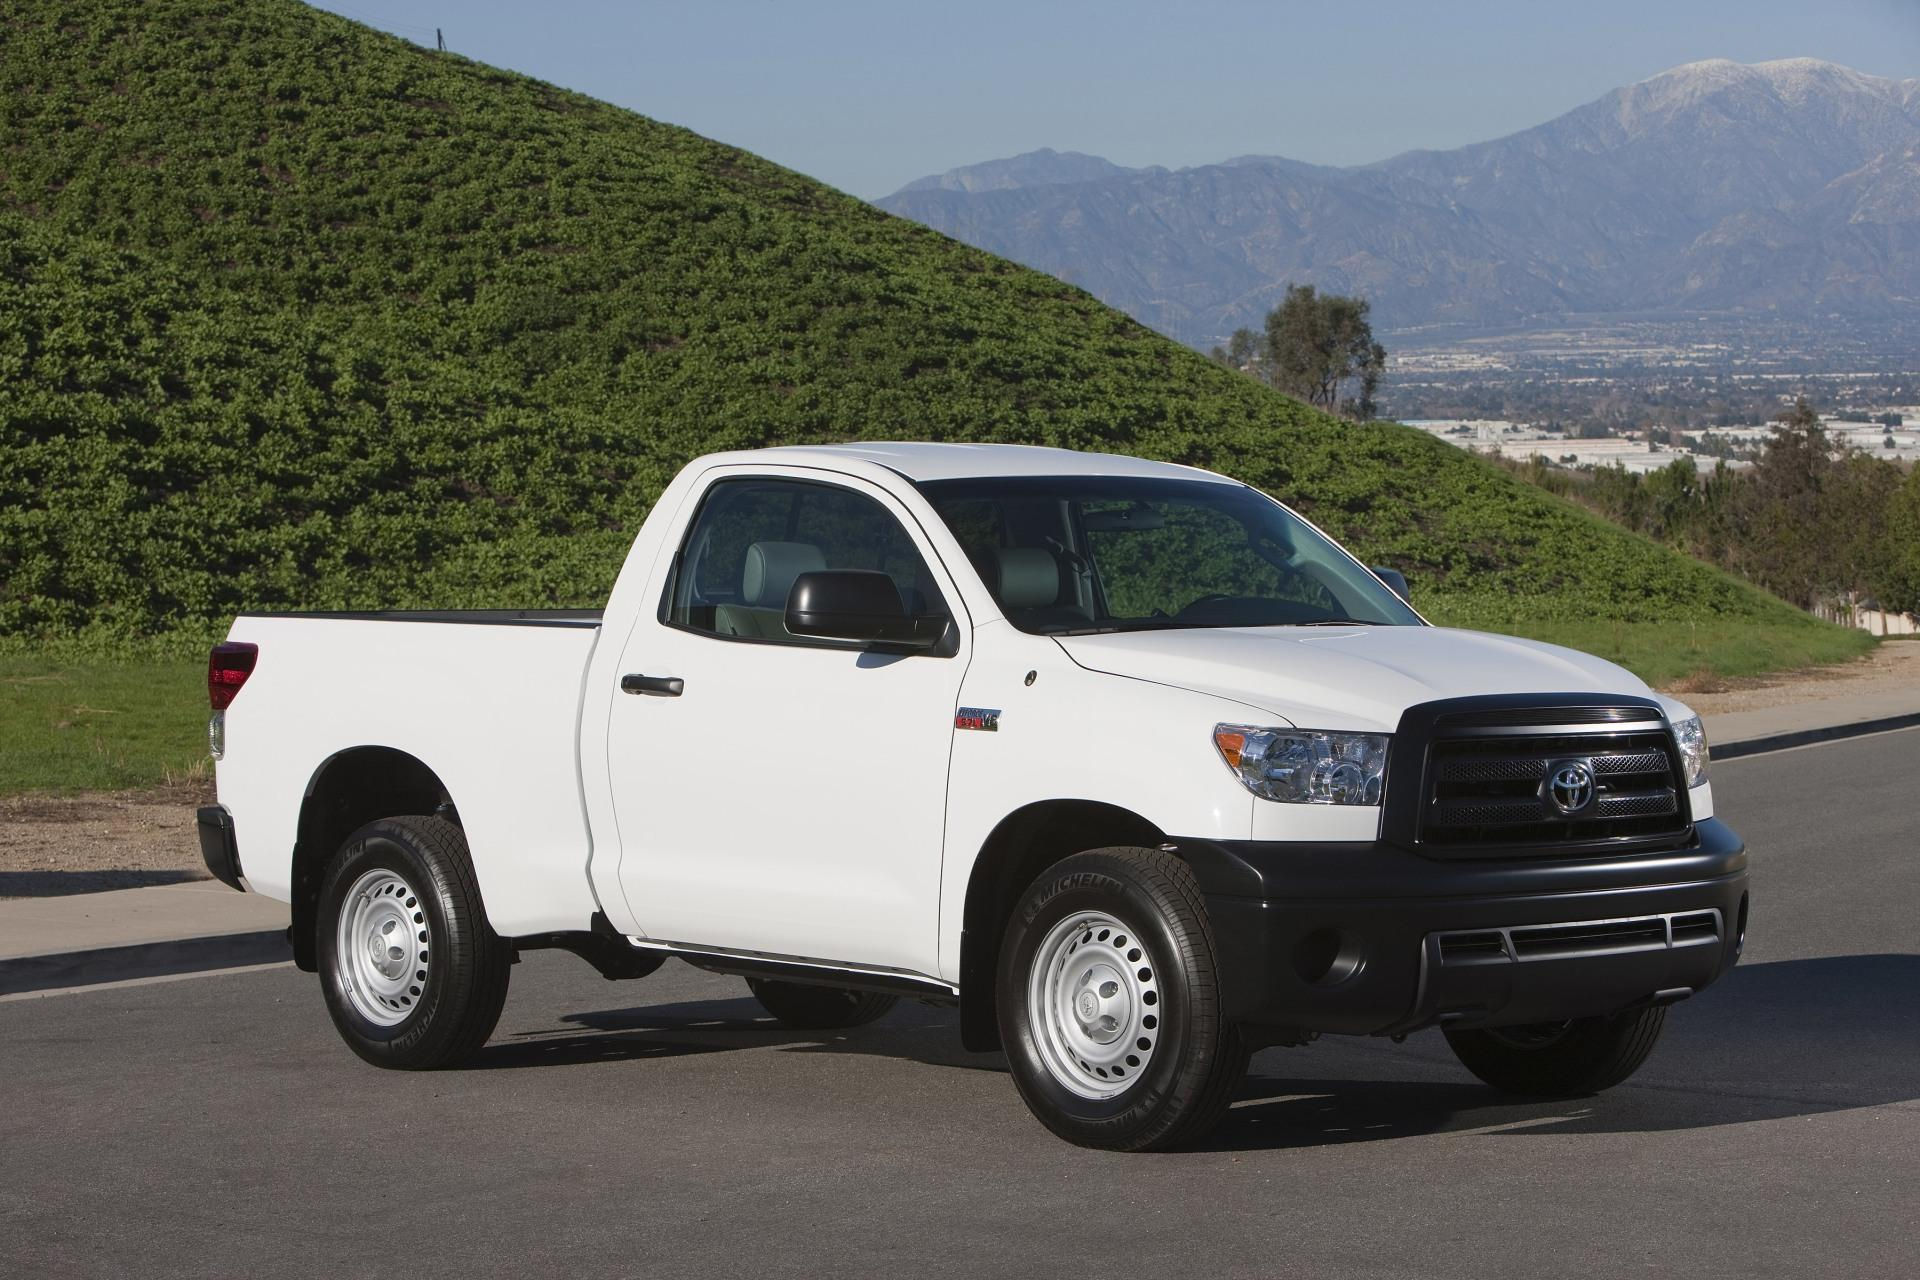 2009 toyota tundra work truck package news and information. Black Bedroom Furniture Sets. Home Design Ideas